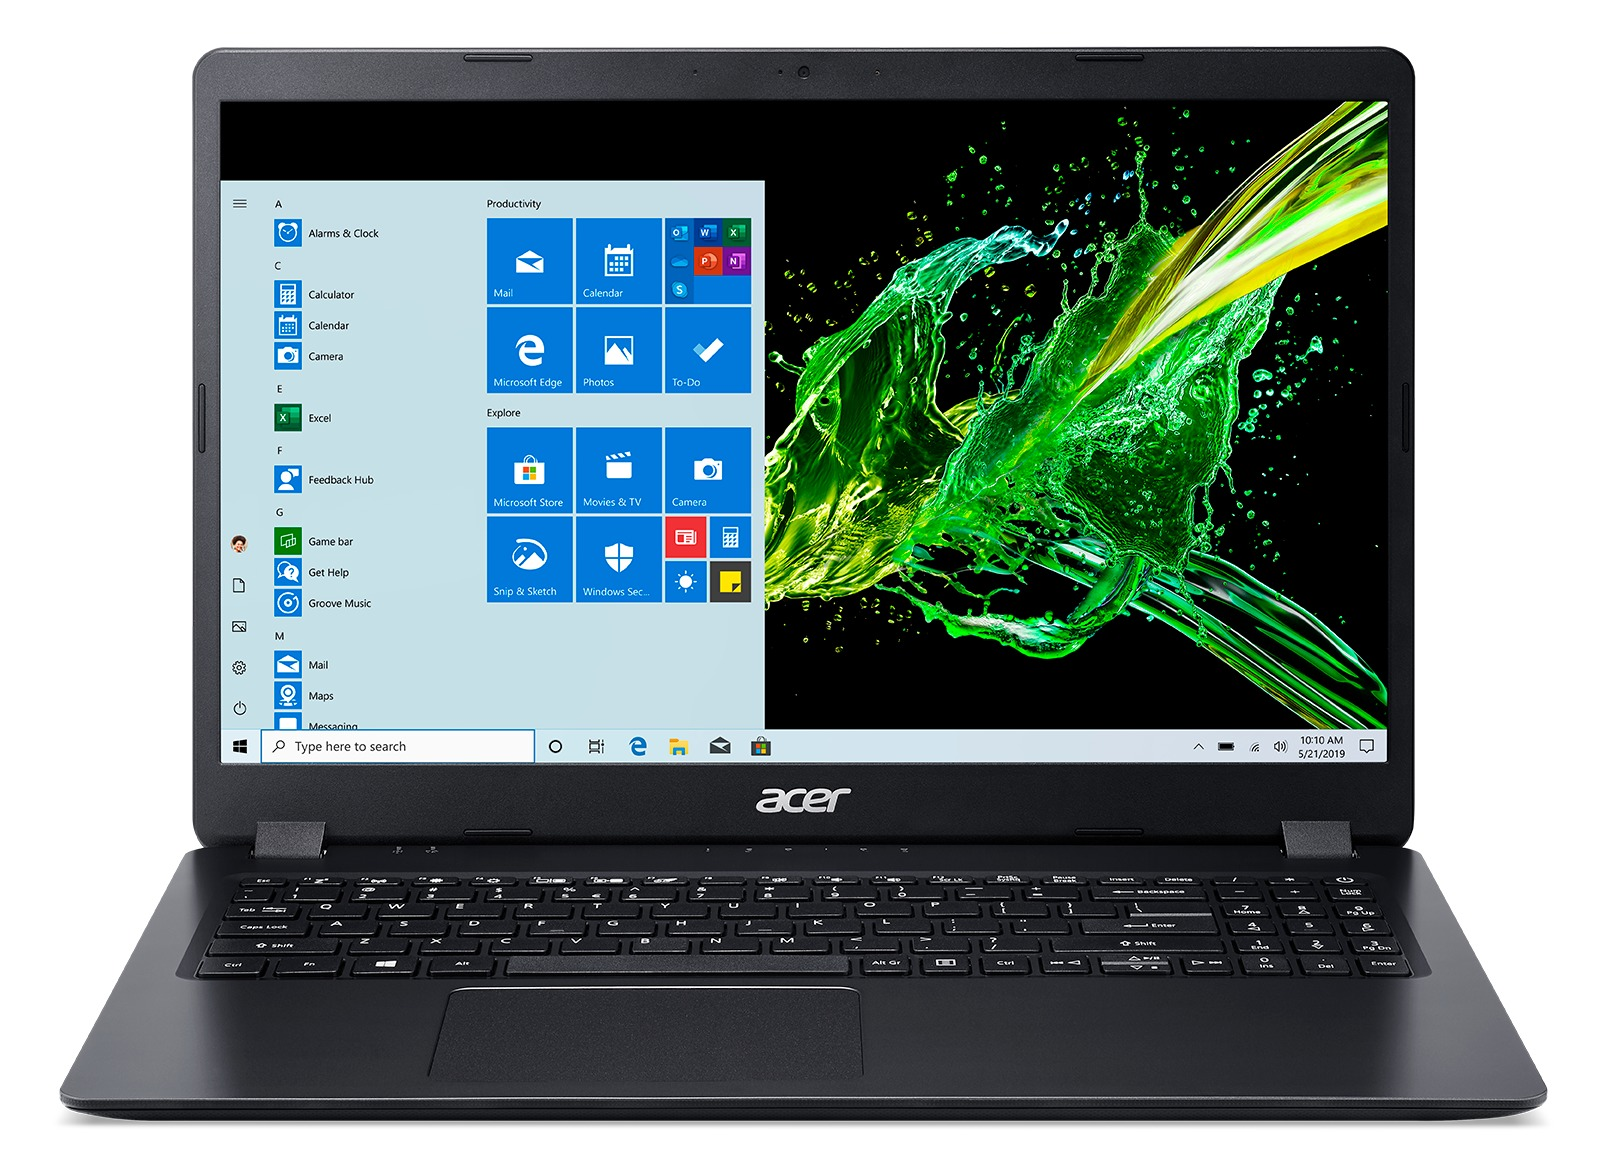 Acer Aspire 3 A315-56-58WY Laptop – 15 Inch